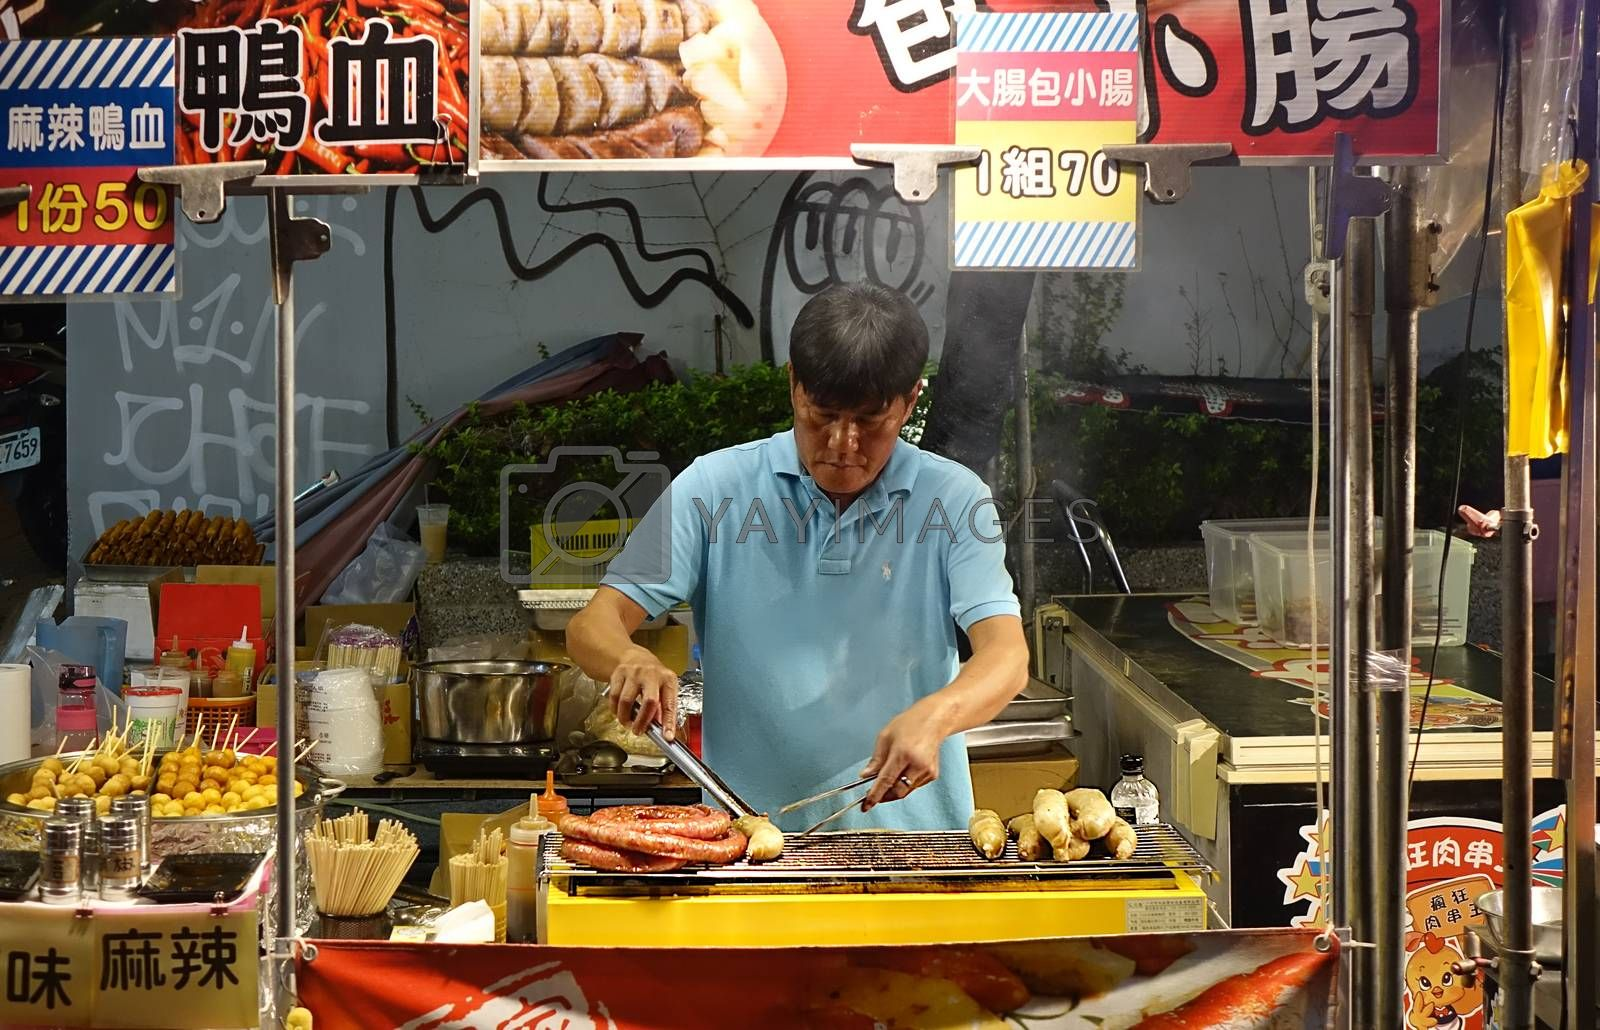 KAOHSIUNG, TAIWAN -- MARCH 2, 2018: An outdoor vendor at a night market grills fresh pork sausages.